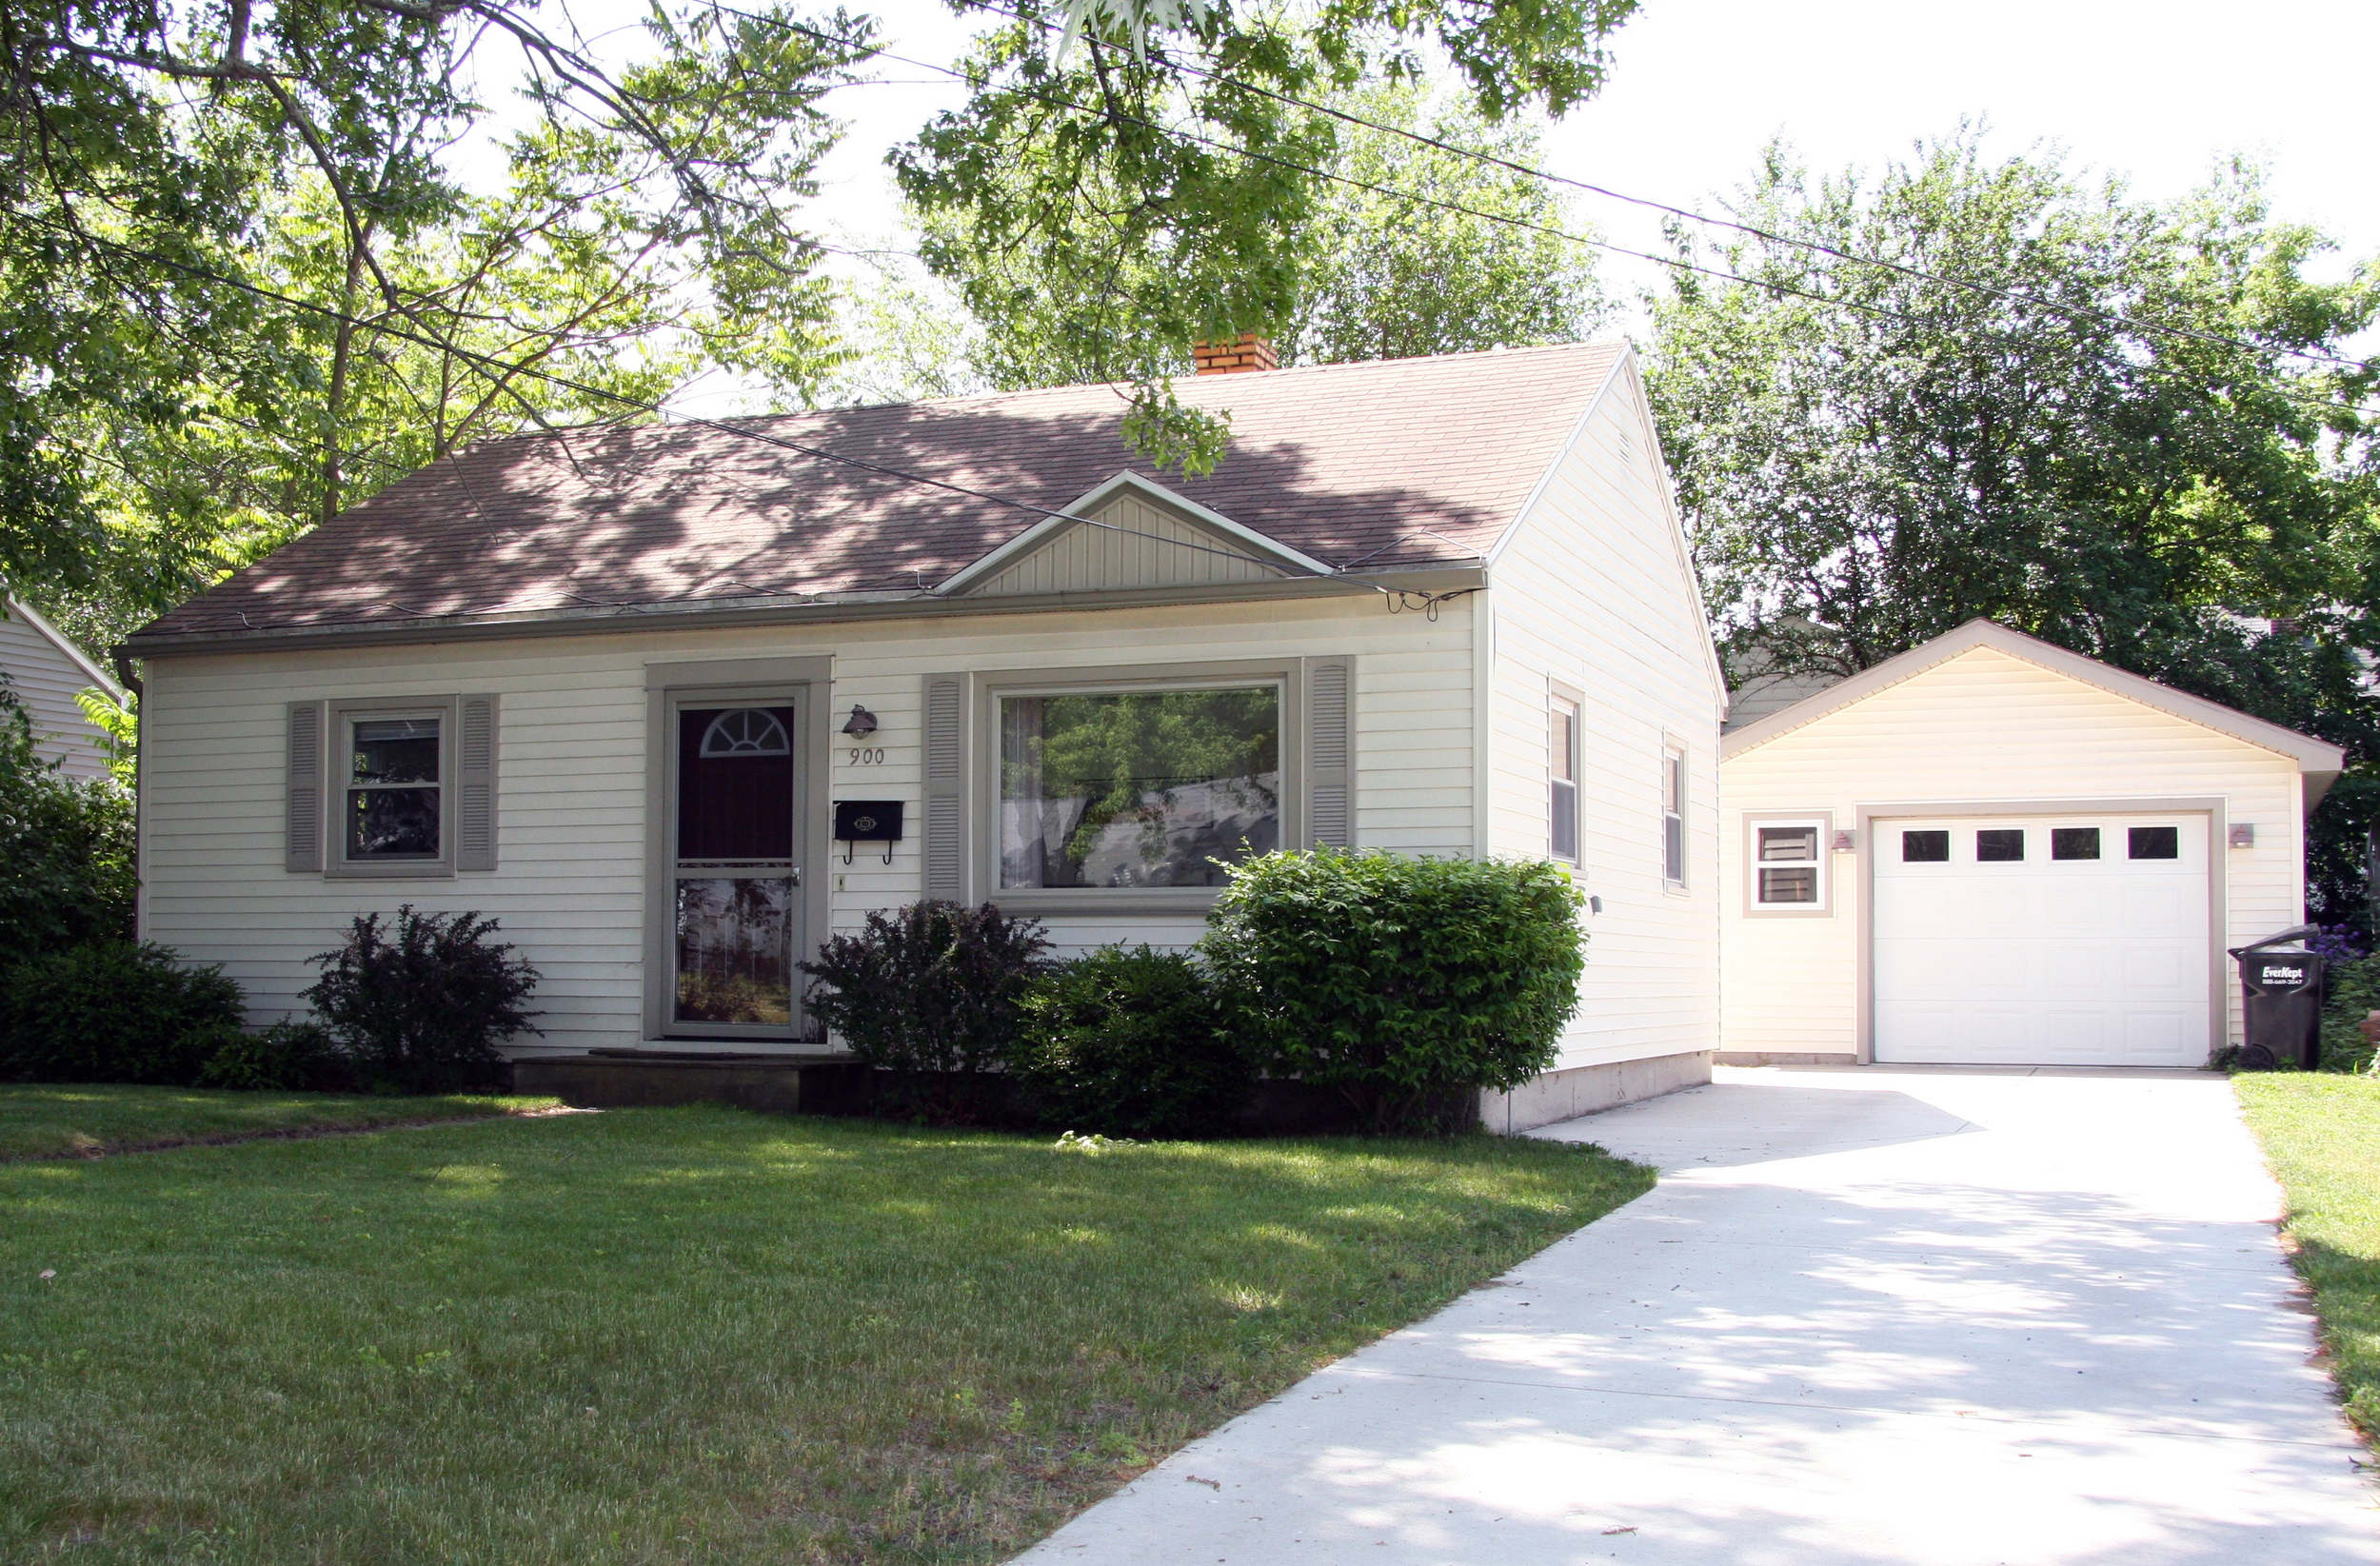 900 SW 33rd Street, Wyoming, MI - Adorable ranch home that has been completely updated!